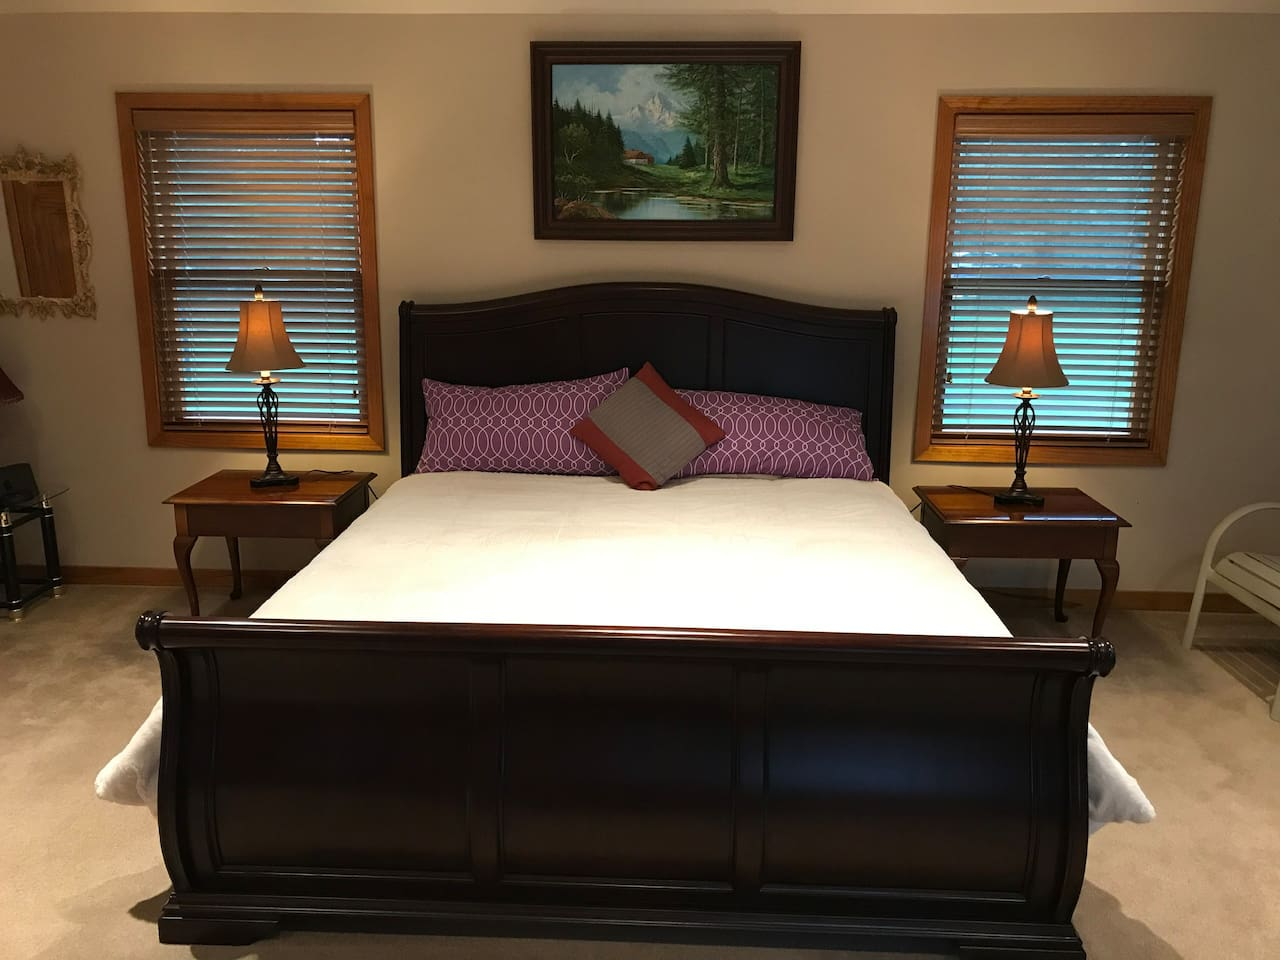 King size bed - Very comfortable